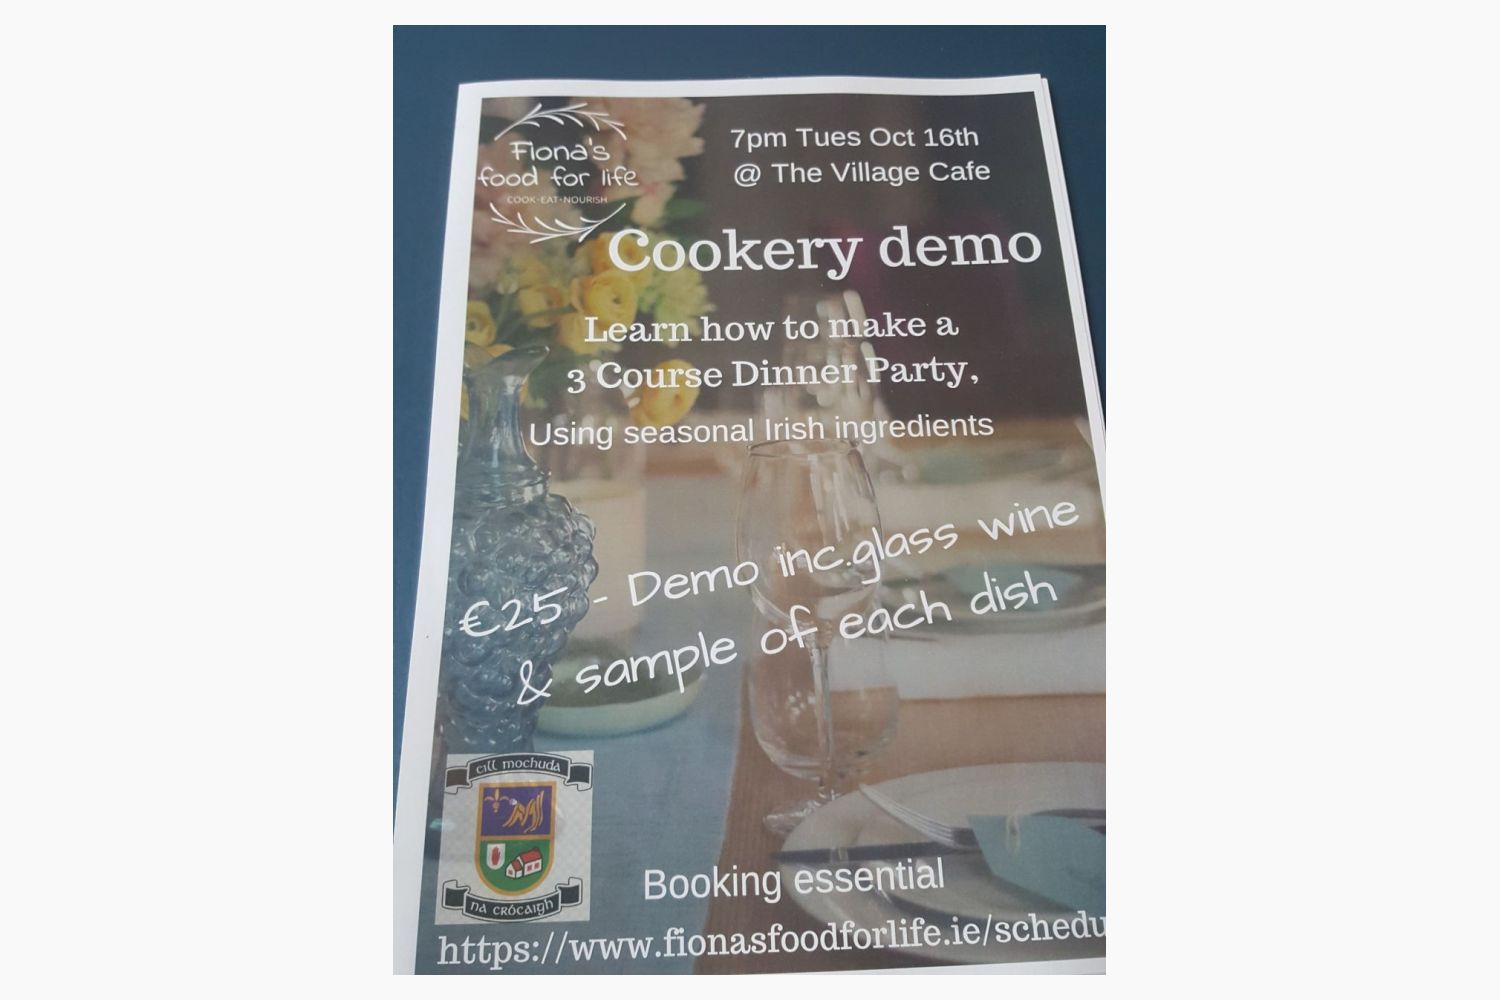 Cookery Demo at the Village Cafe Tuesday Oct 16th at 7pm